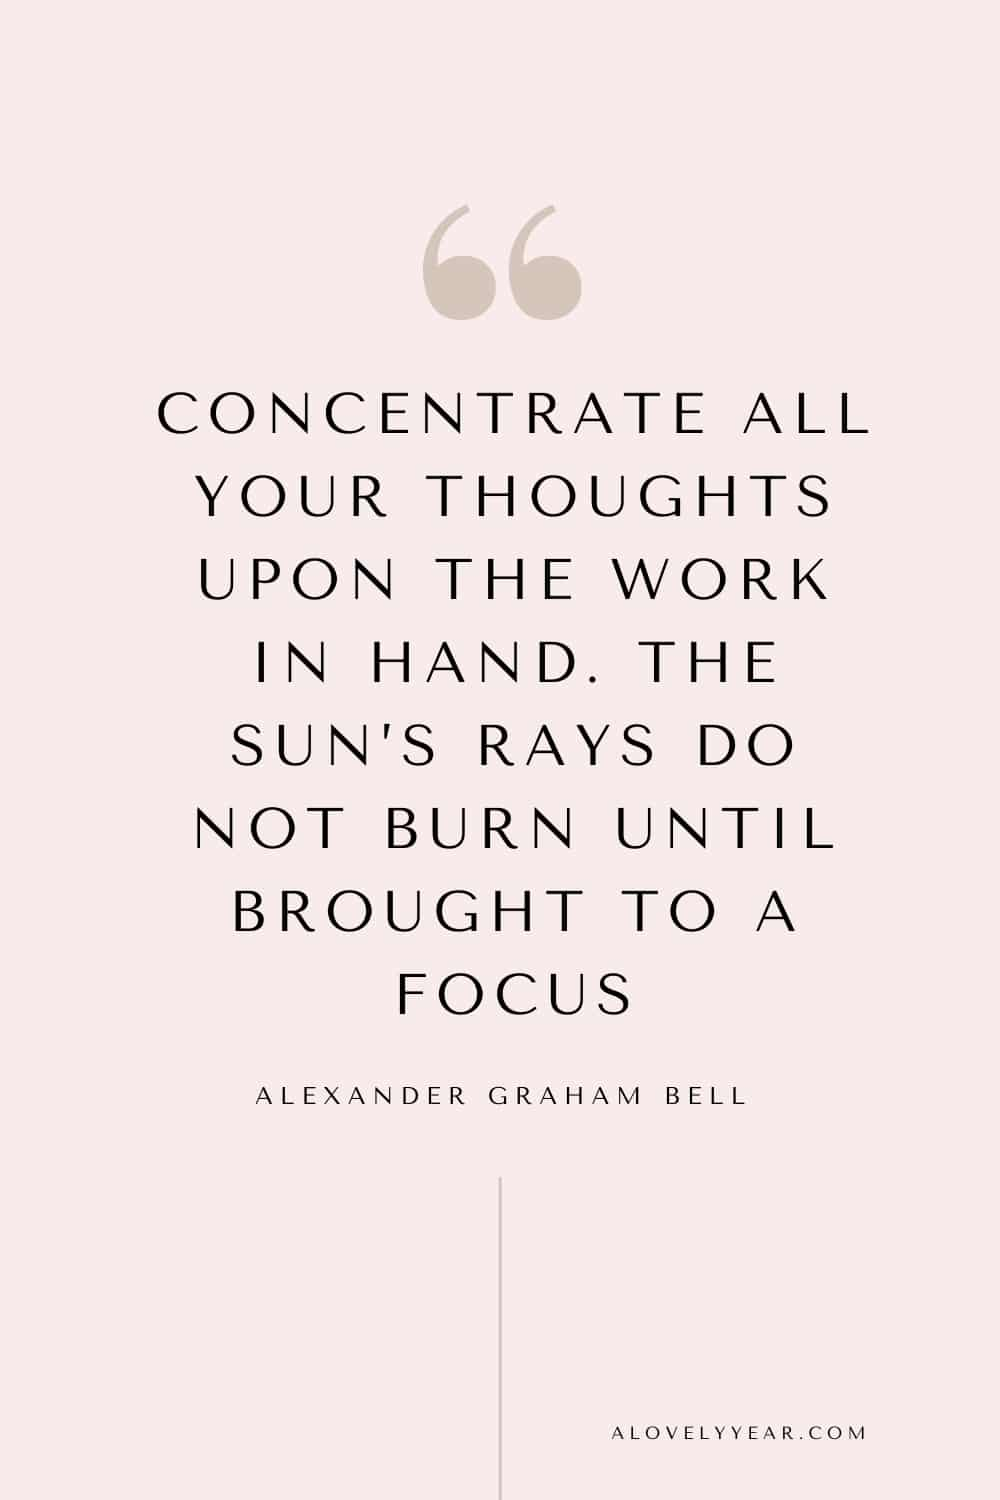 Get things done quote - Concentrate all your thoughts upon the work in hand. The sun's rays do not burn until brought to a focus. – Alexander Graham Bell